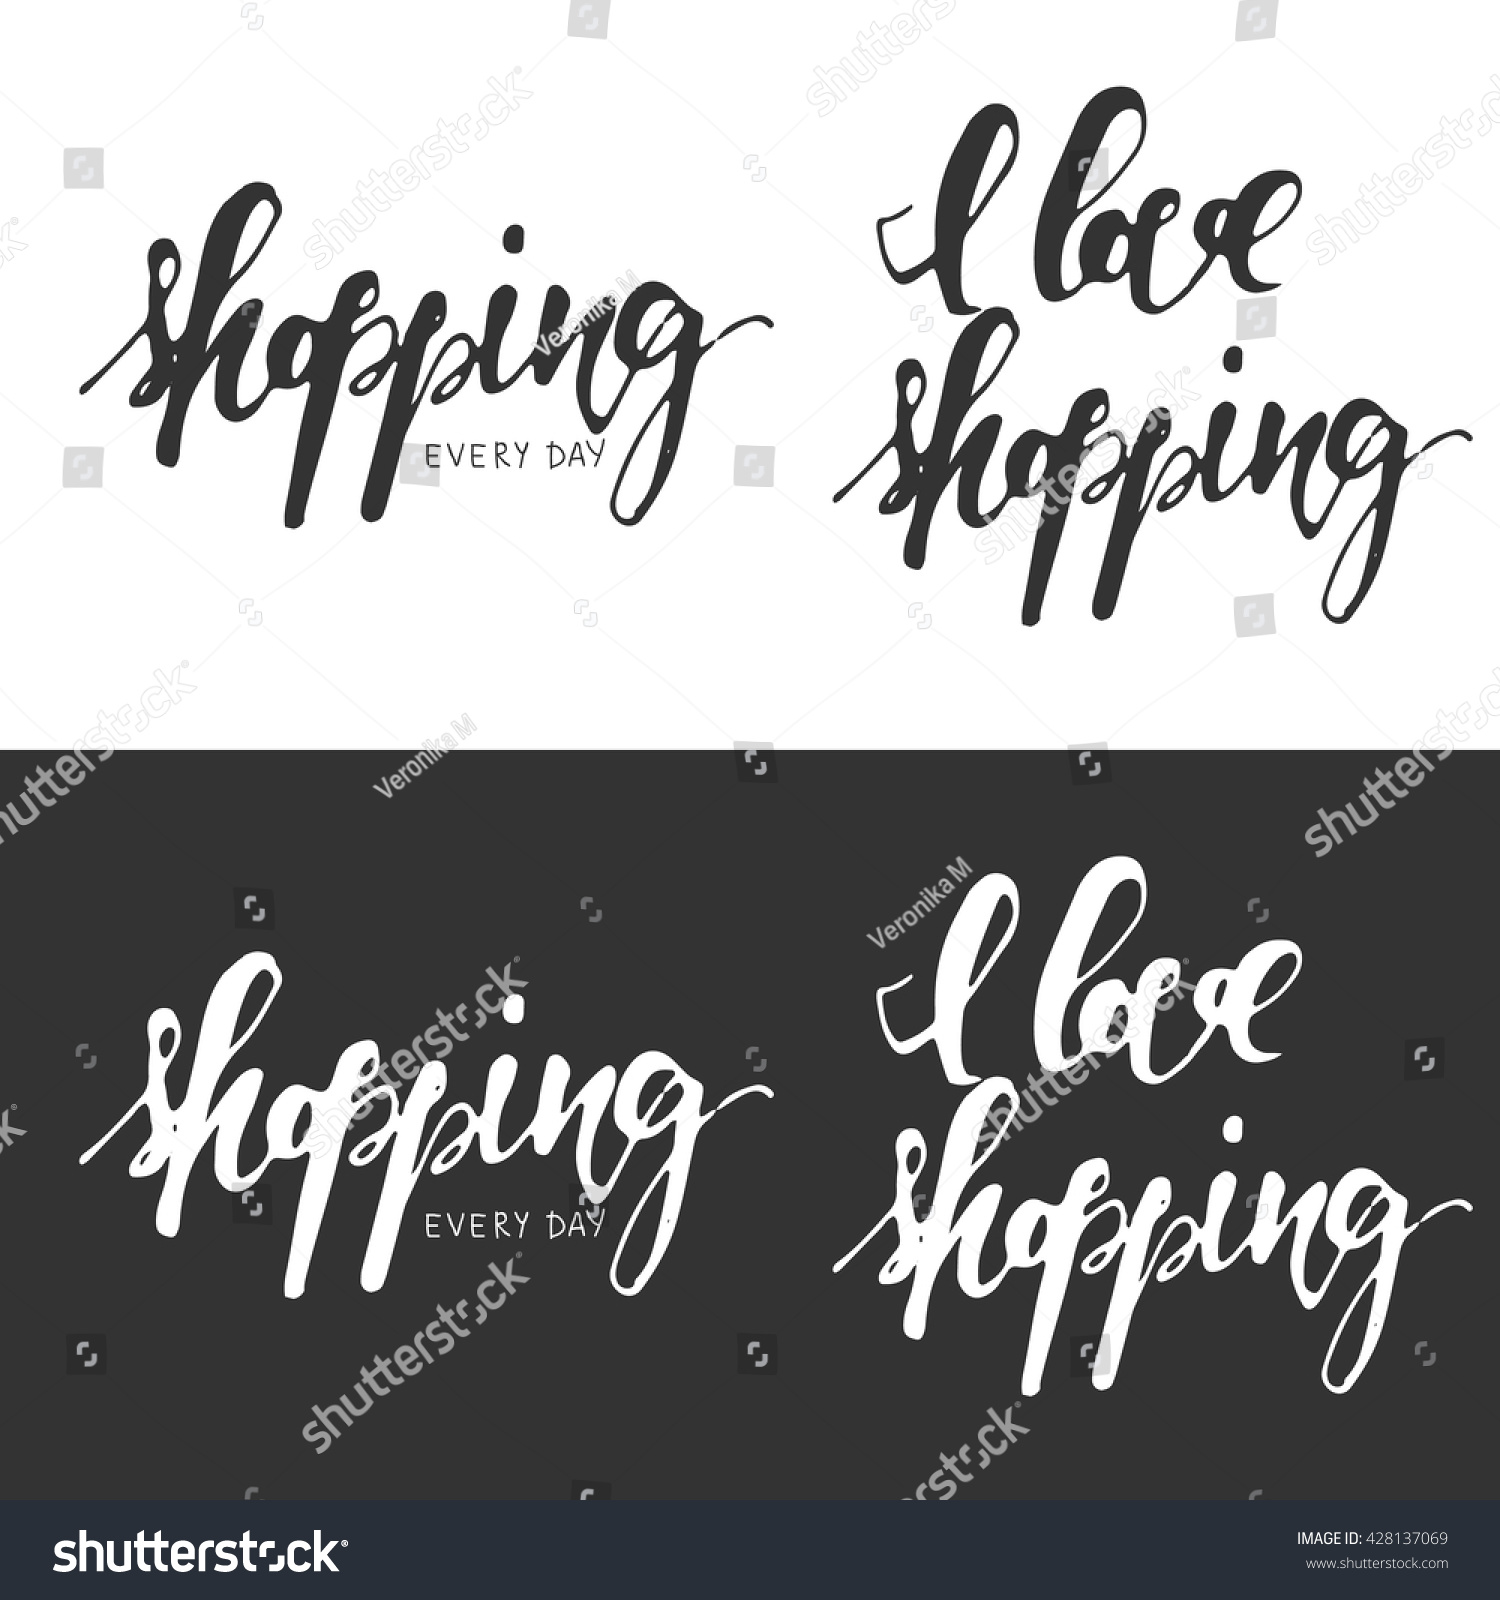 I love shopping every day sale banners hand